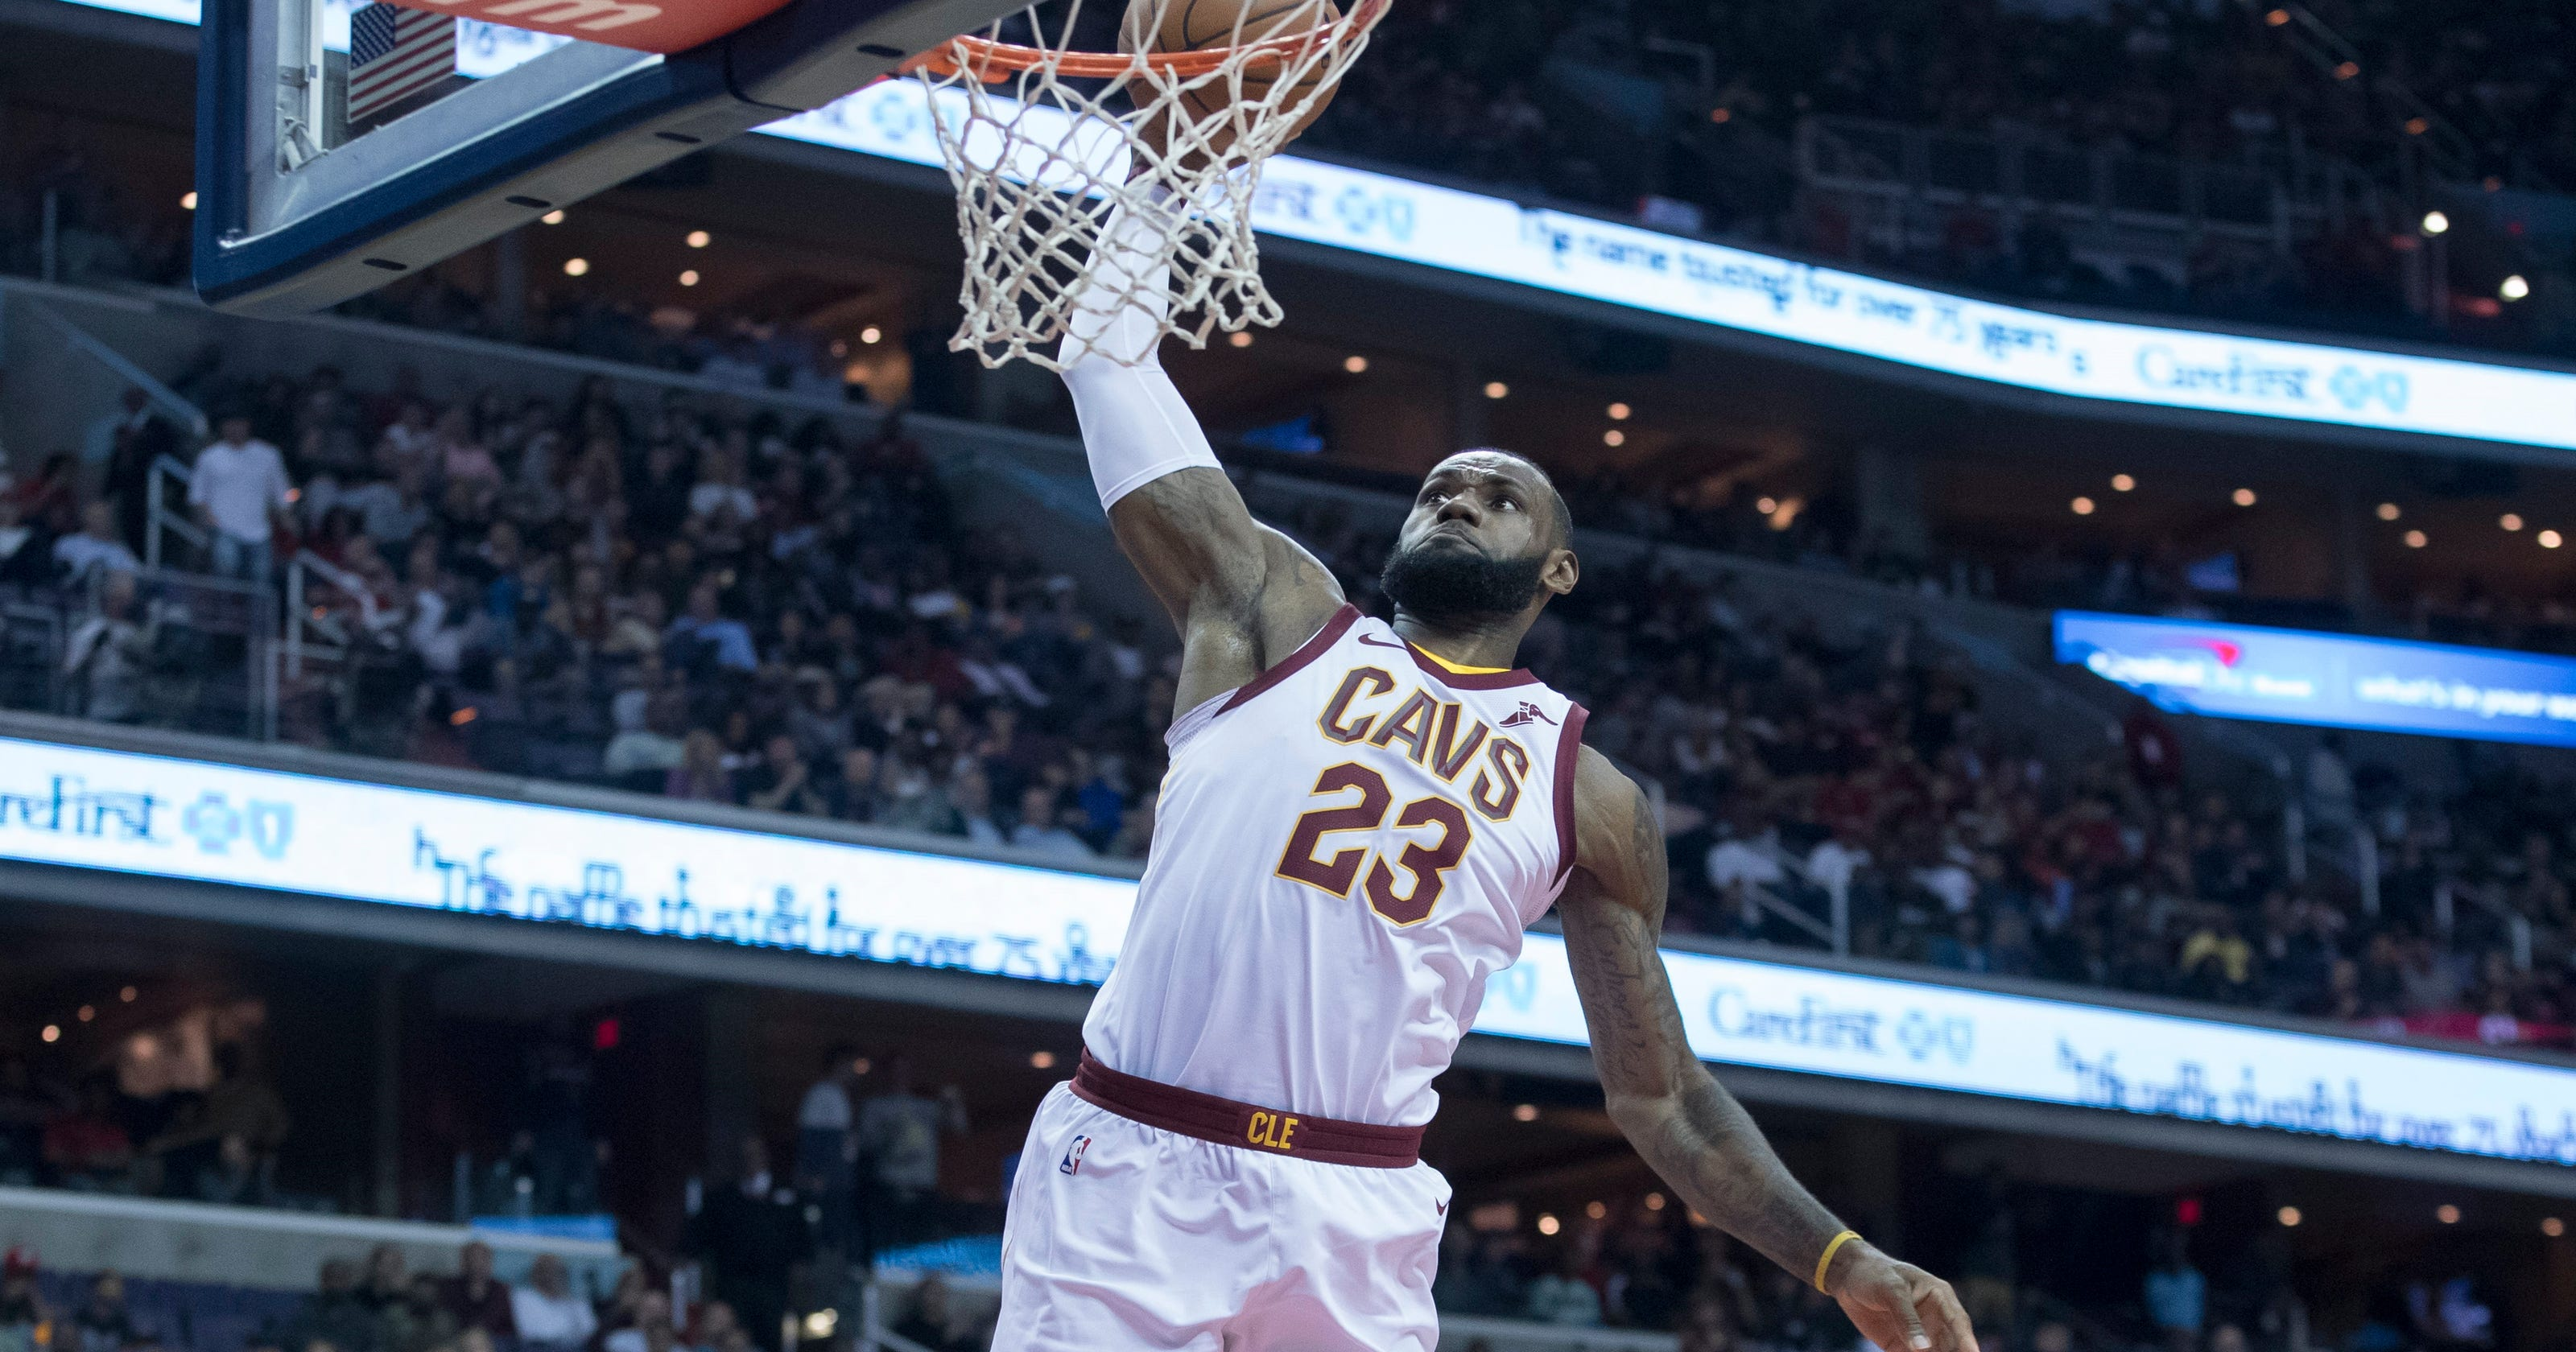 c35f47f99995 LeBron erupts for 57 as Cavaliers top Wizards to snap four-game skid